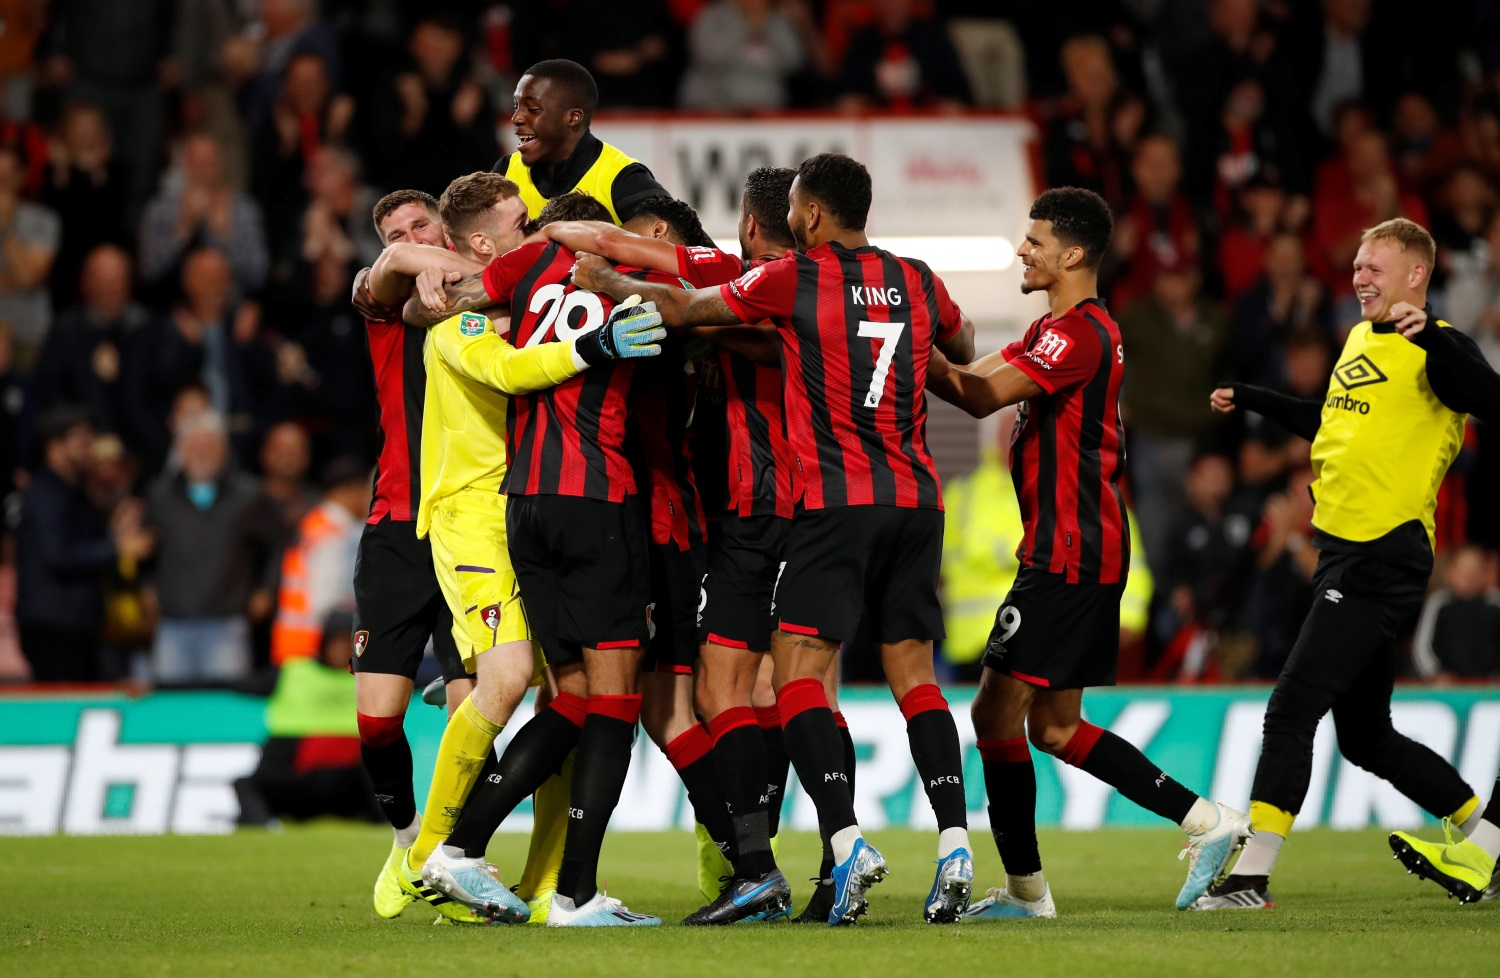 Bournemouth 0-0 Forest Green Rovers (Bournemouth win 3-0 on penalties)